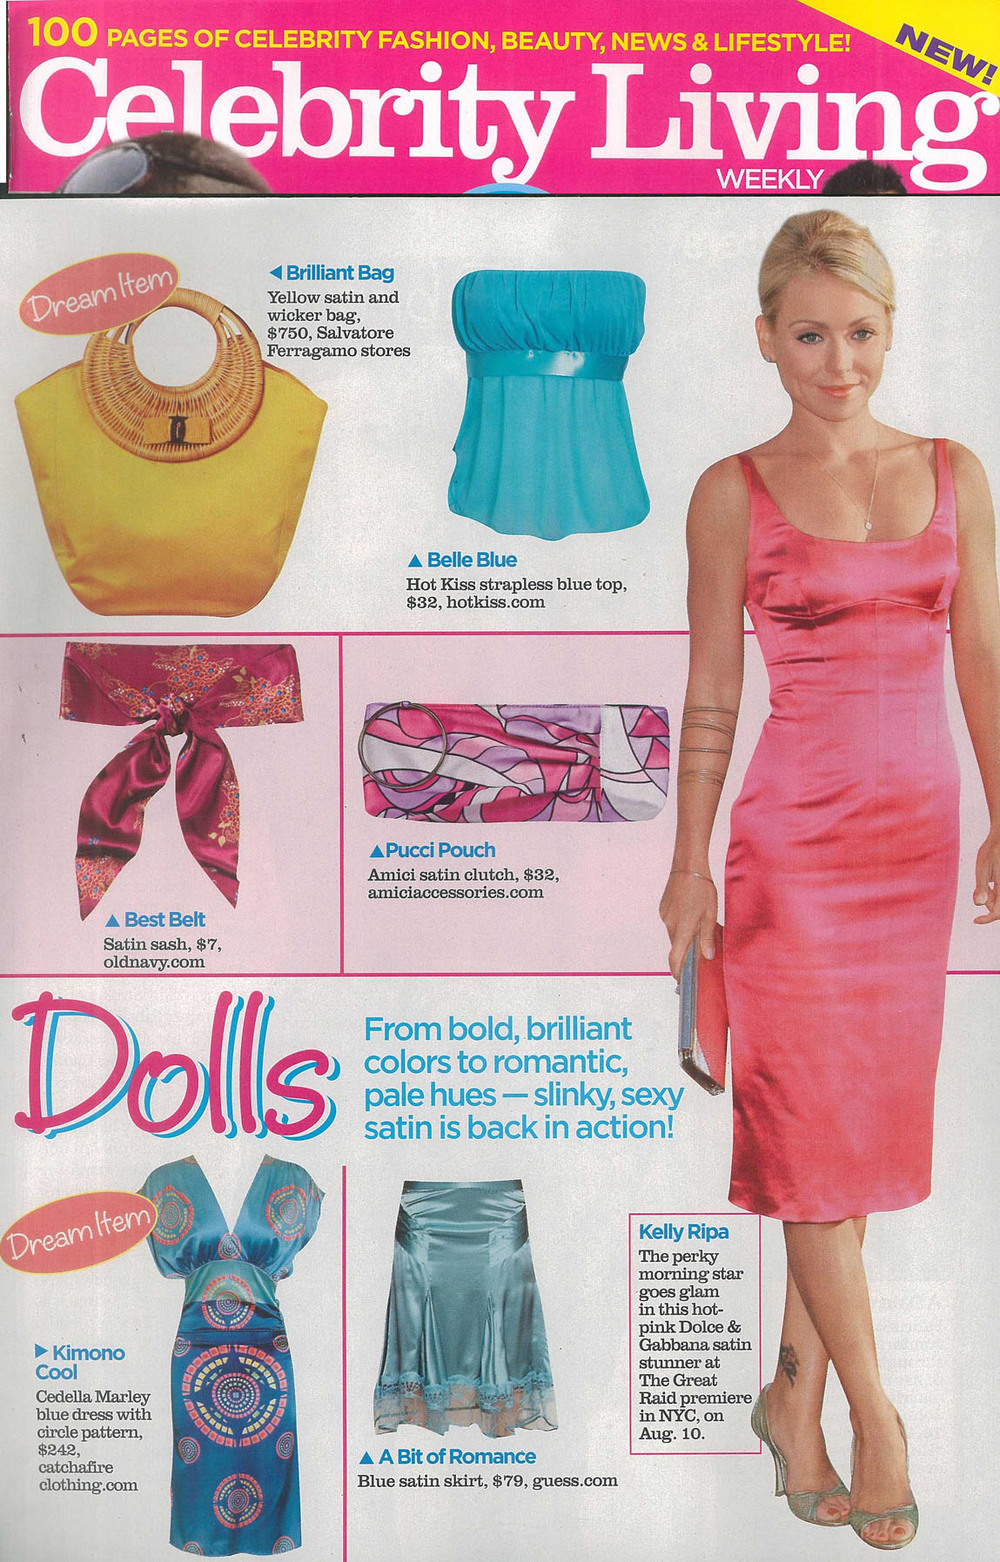 Celebrity Living Magazine. Catch A Fire Clothing. Blue Ocean Dress.